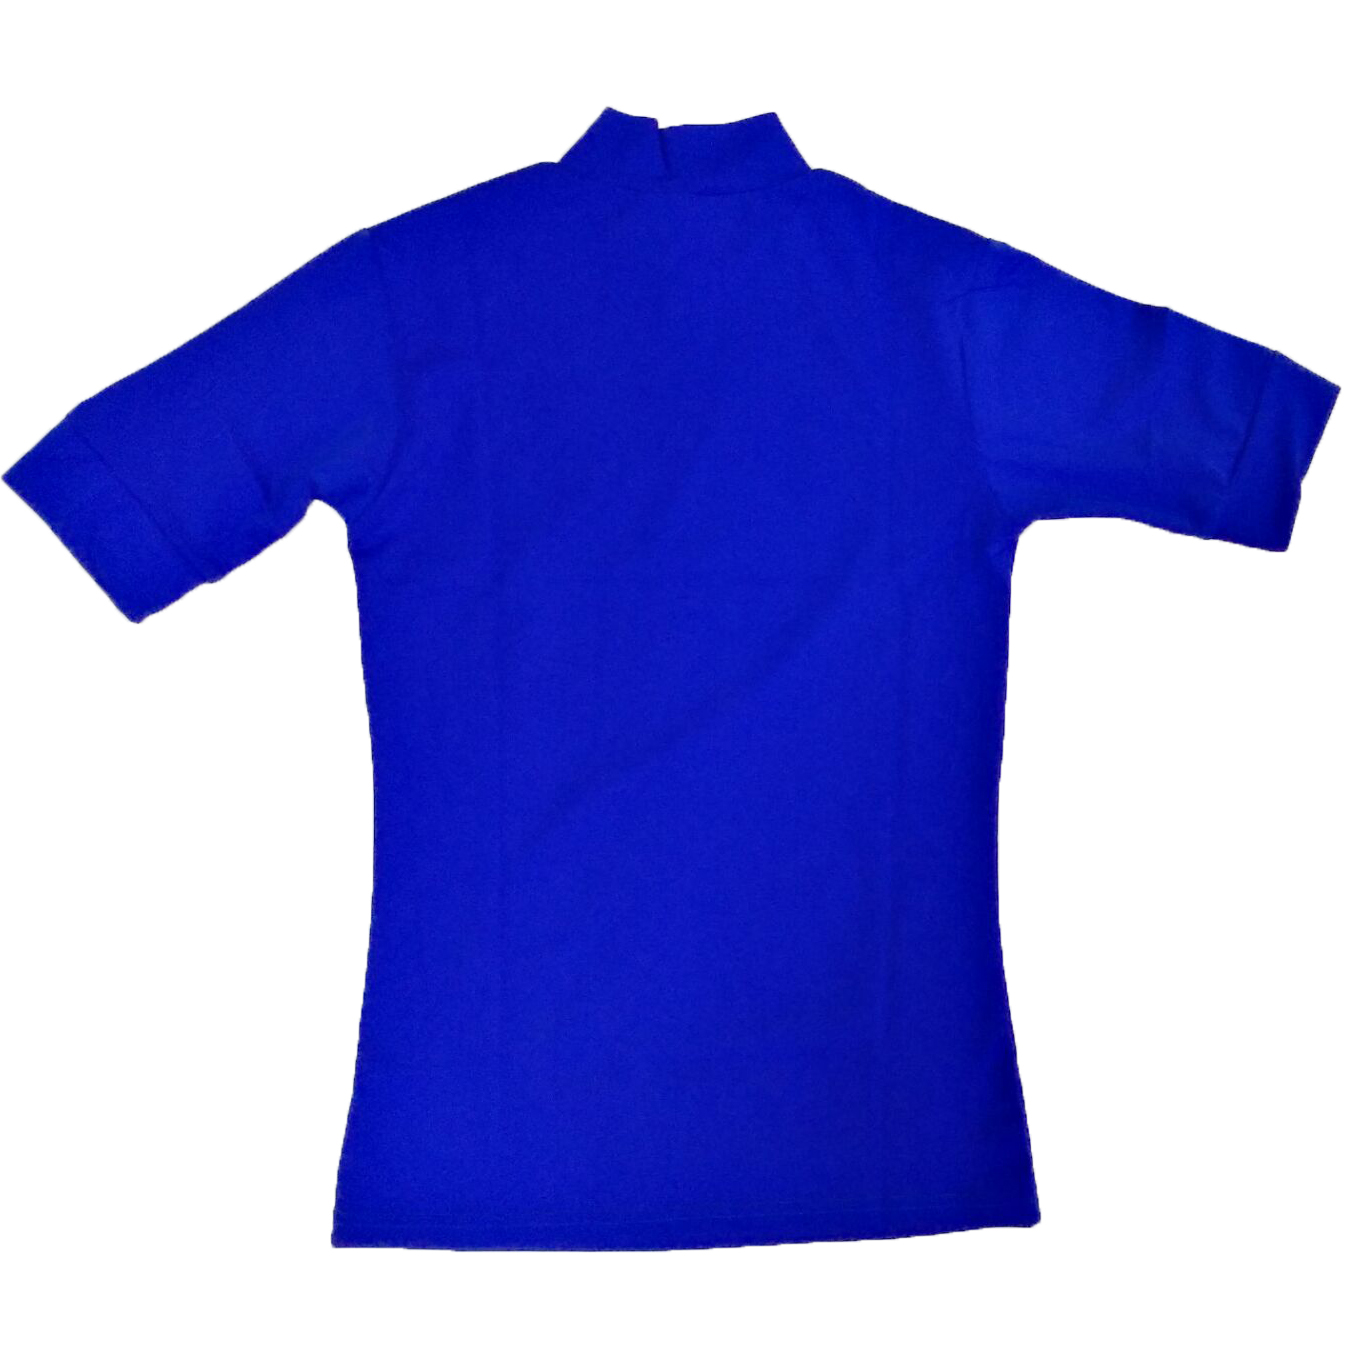 Mele n female short sleeves rashguard Loose version Royal blue.jpg